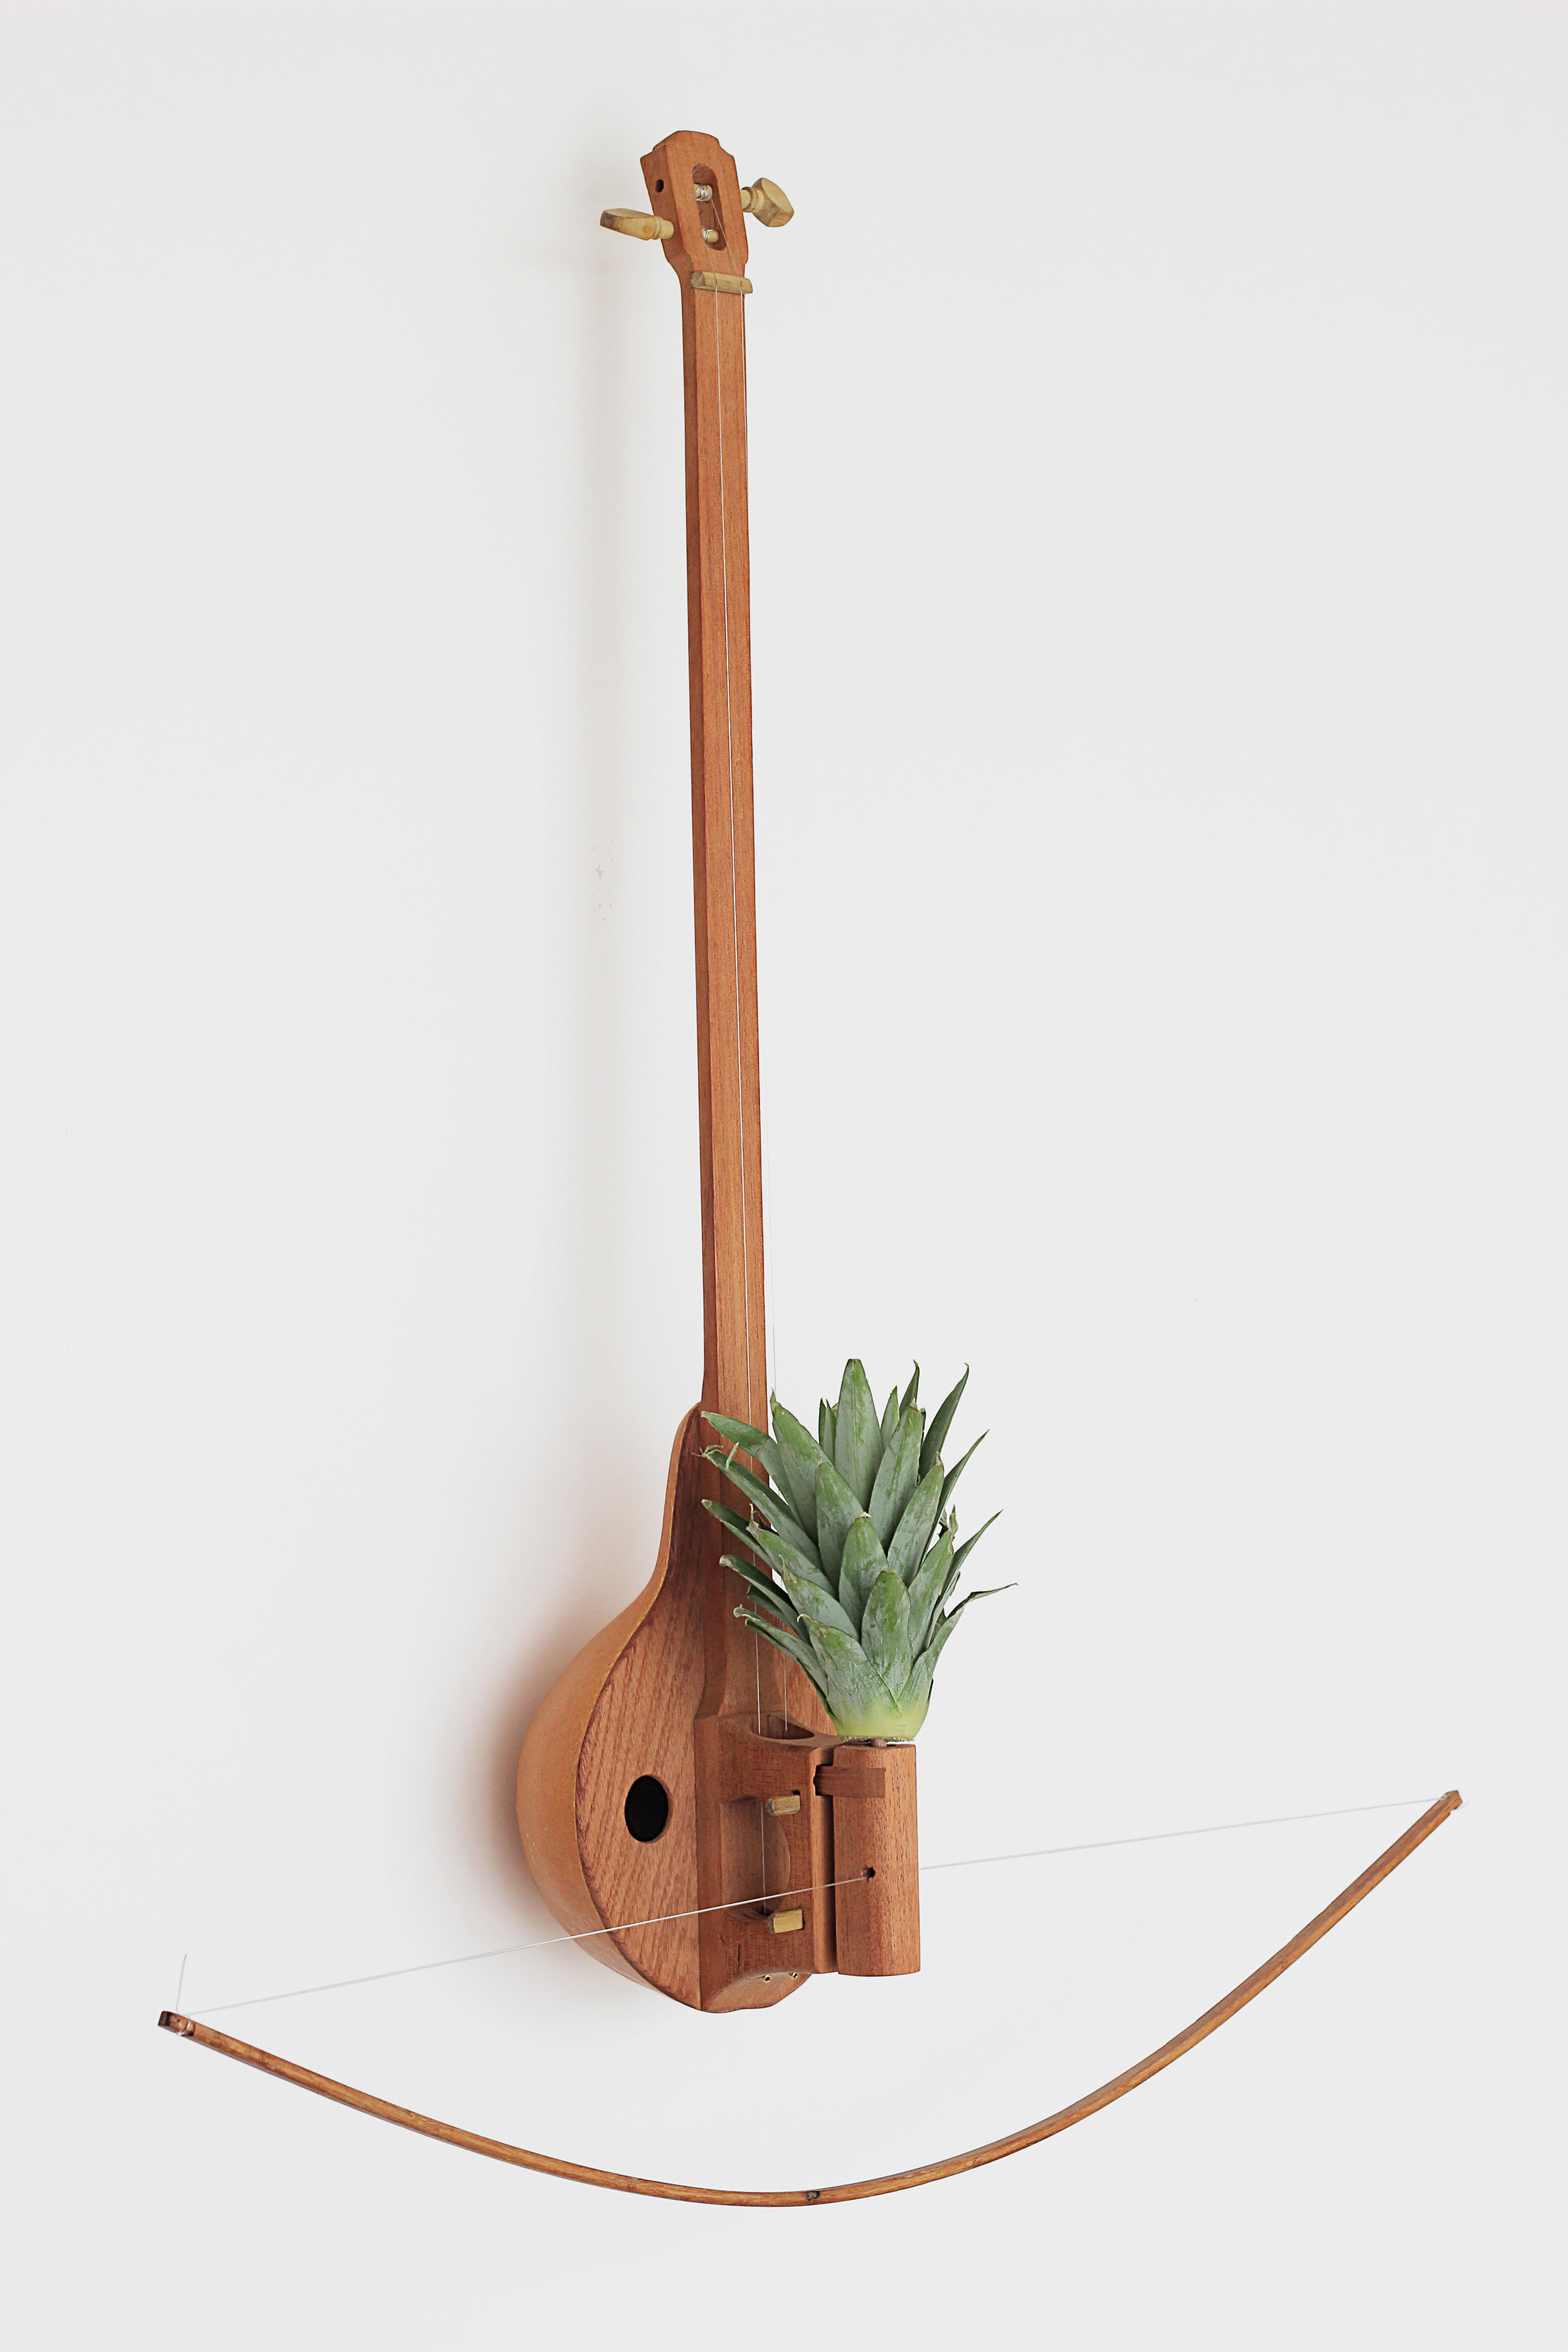 - Each instrument is made with wood, a gourd, strings & a pineapple topSmallest Instrument: 60cm x 20cm x 18.5cm Largest Instrument: 118cm x 33cm x 28cm